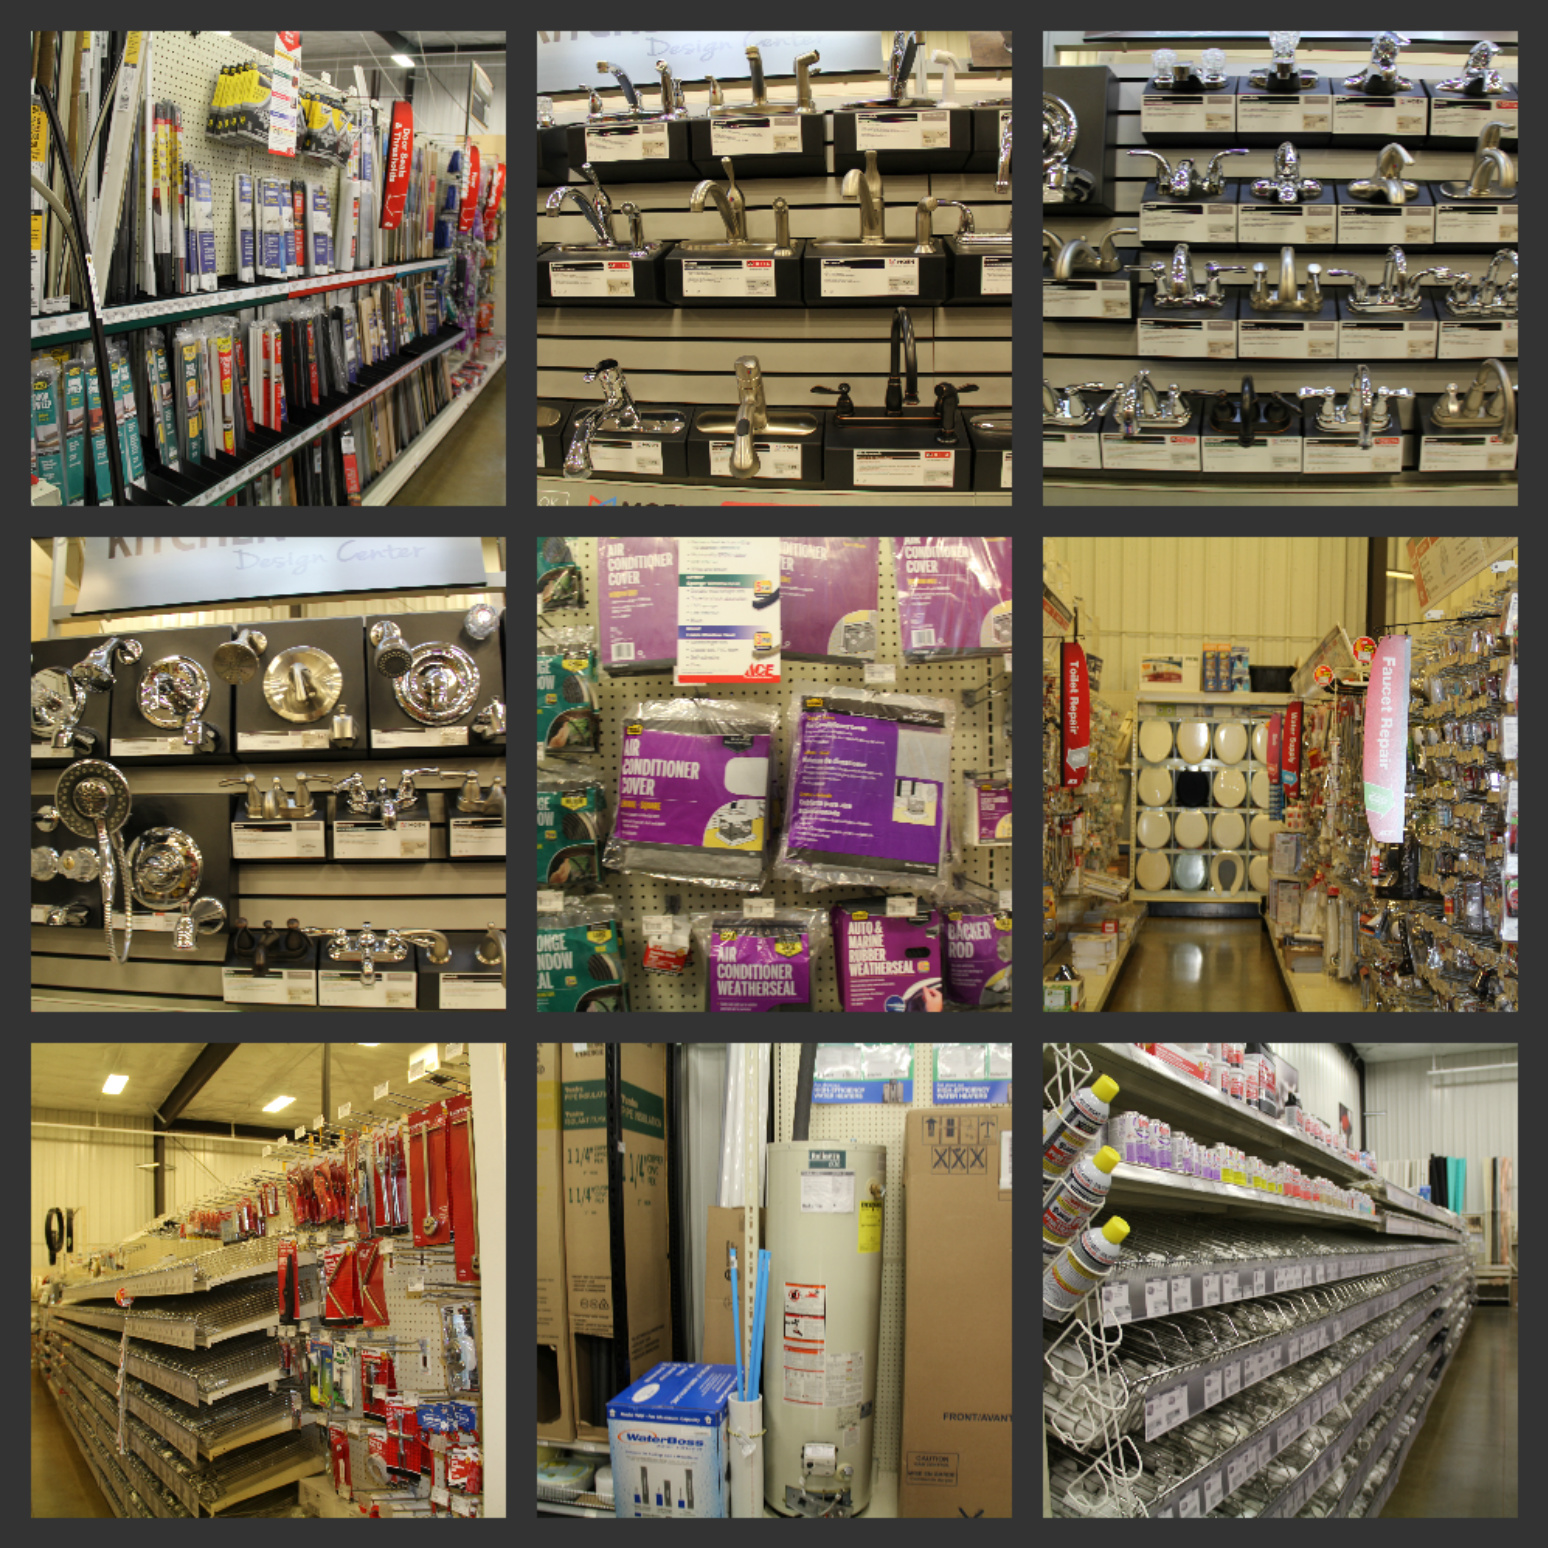 Ace Hardware Billings MT | Shop for Hardware Billings MT, Home ...